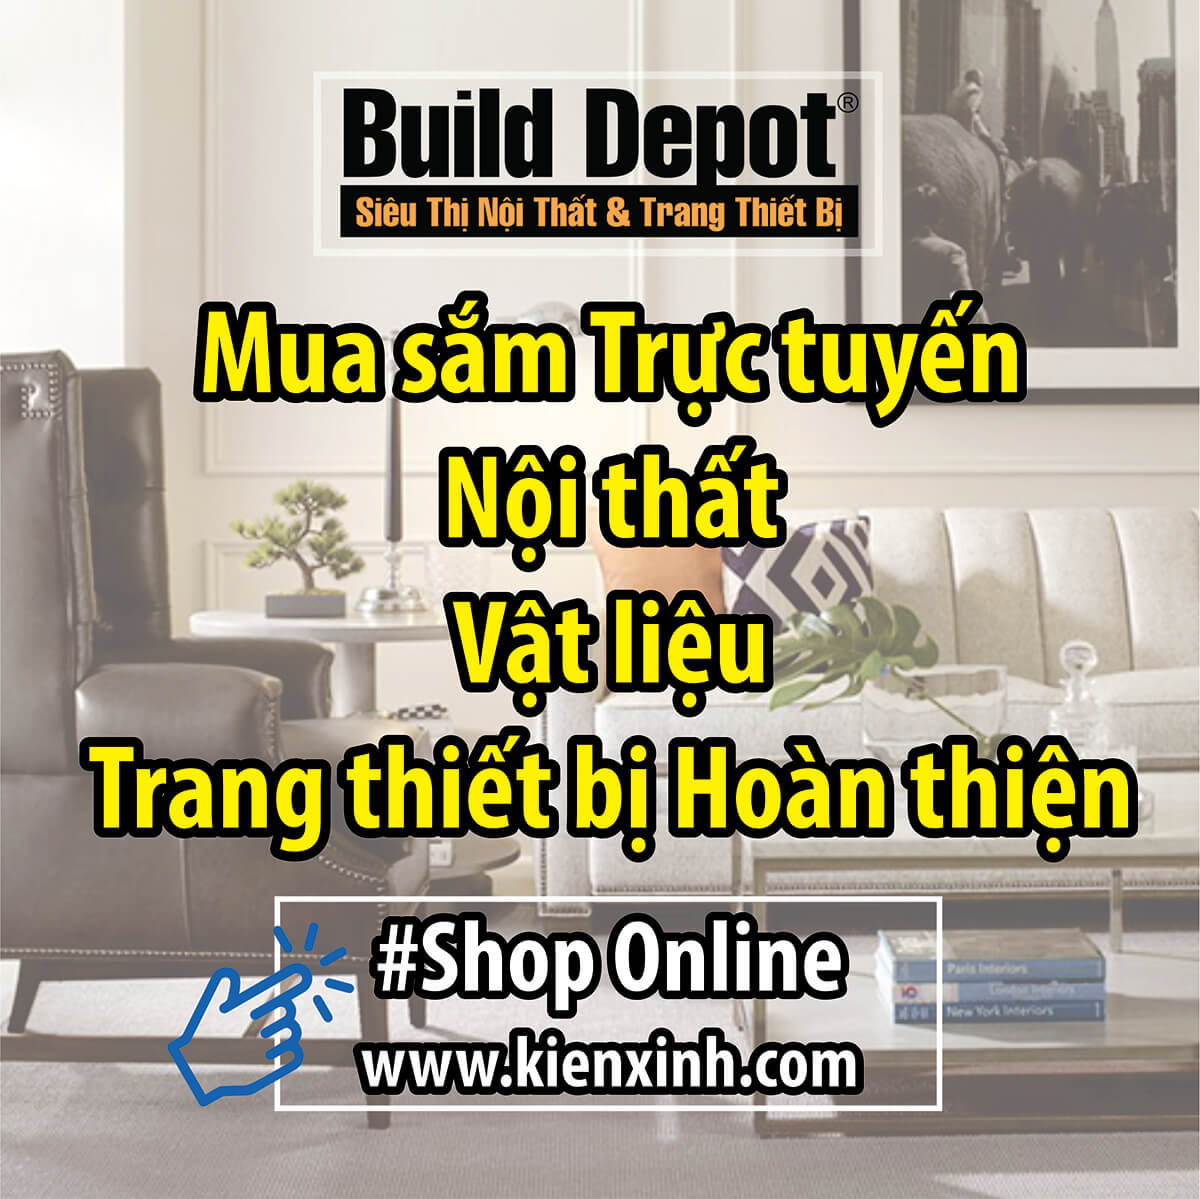 Shopping Online with Build Depot